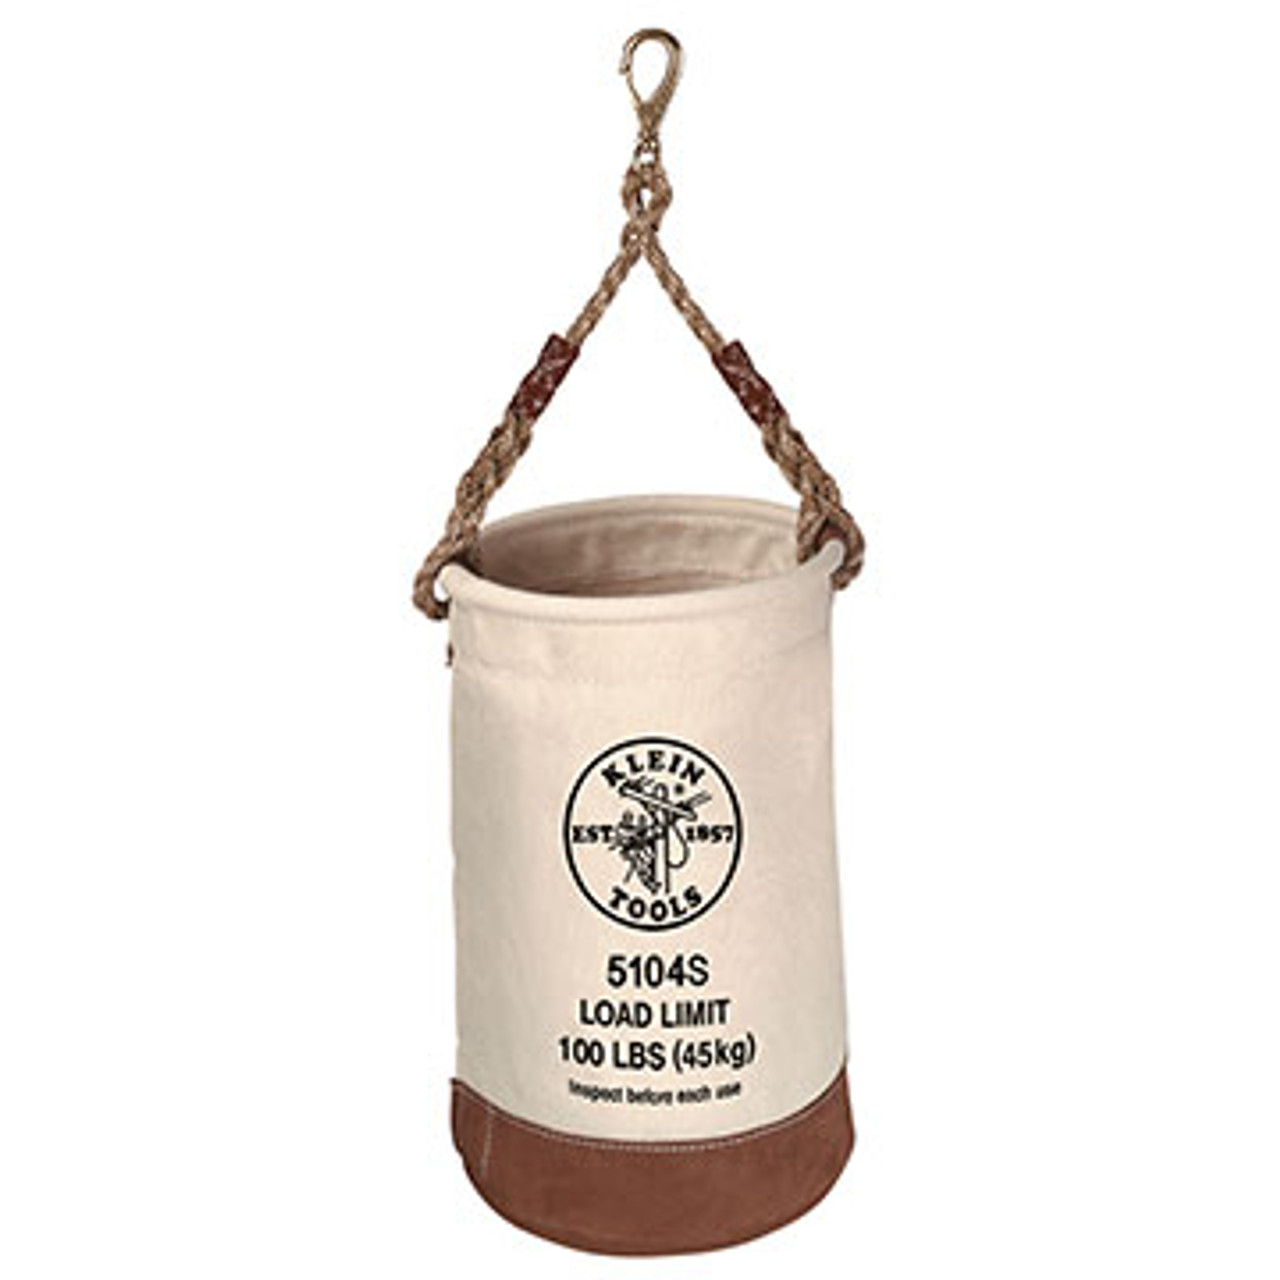 Klein 5104S Load Rated Leather-Bottom Bucket with Swivel Snap